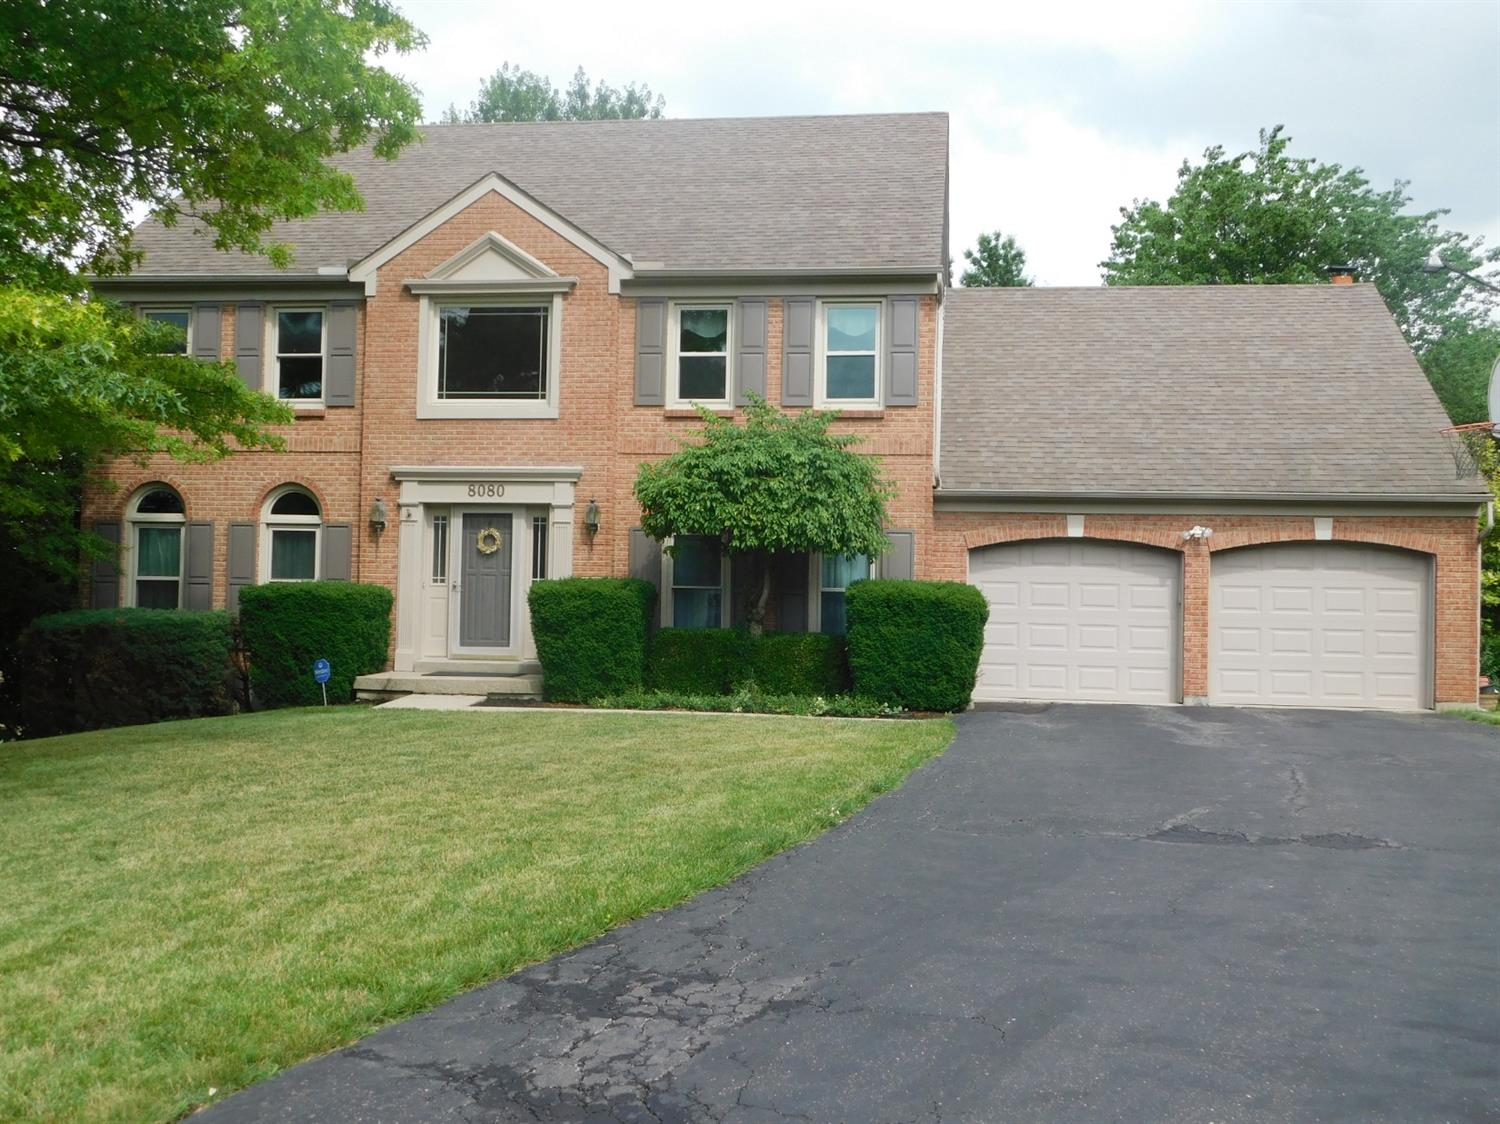 Property for sale at 8080 Old Crow Court, West Chester,  Ohio 45069